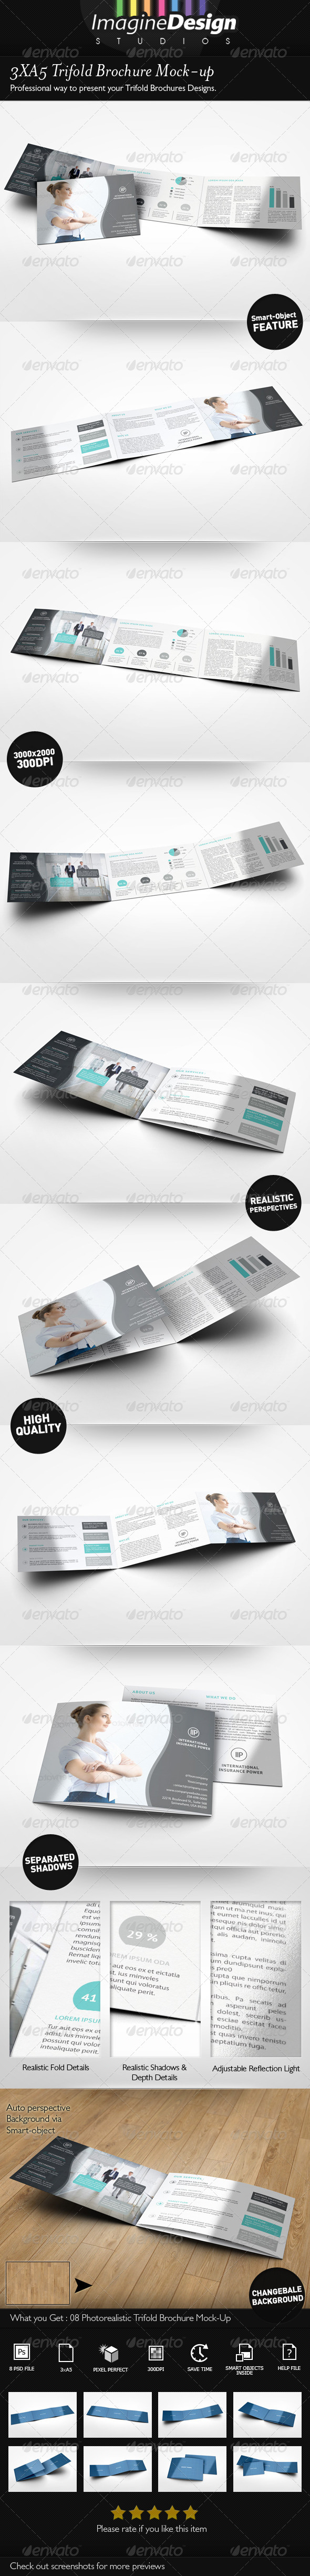 GraphicRiver 3xA5 Trifold Brochure Mock-up Landscape 7385519